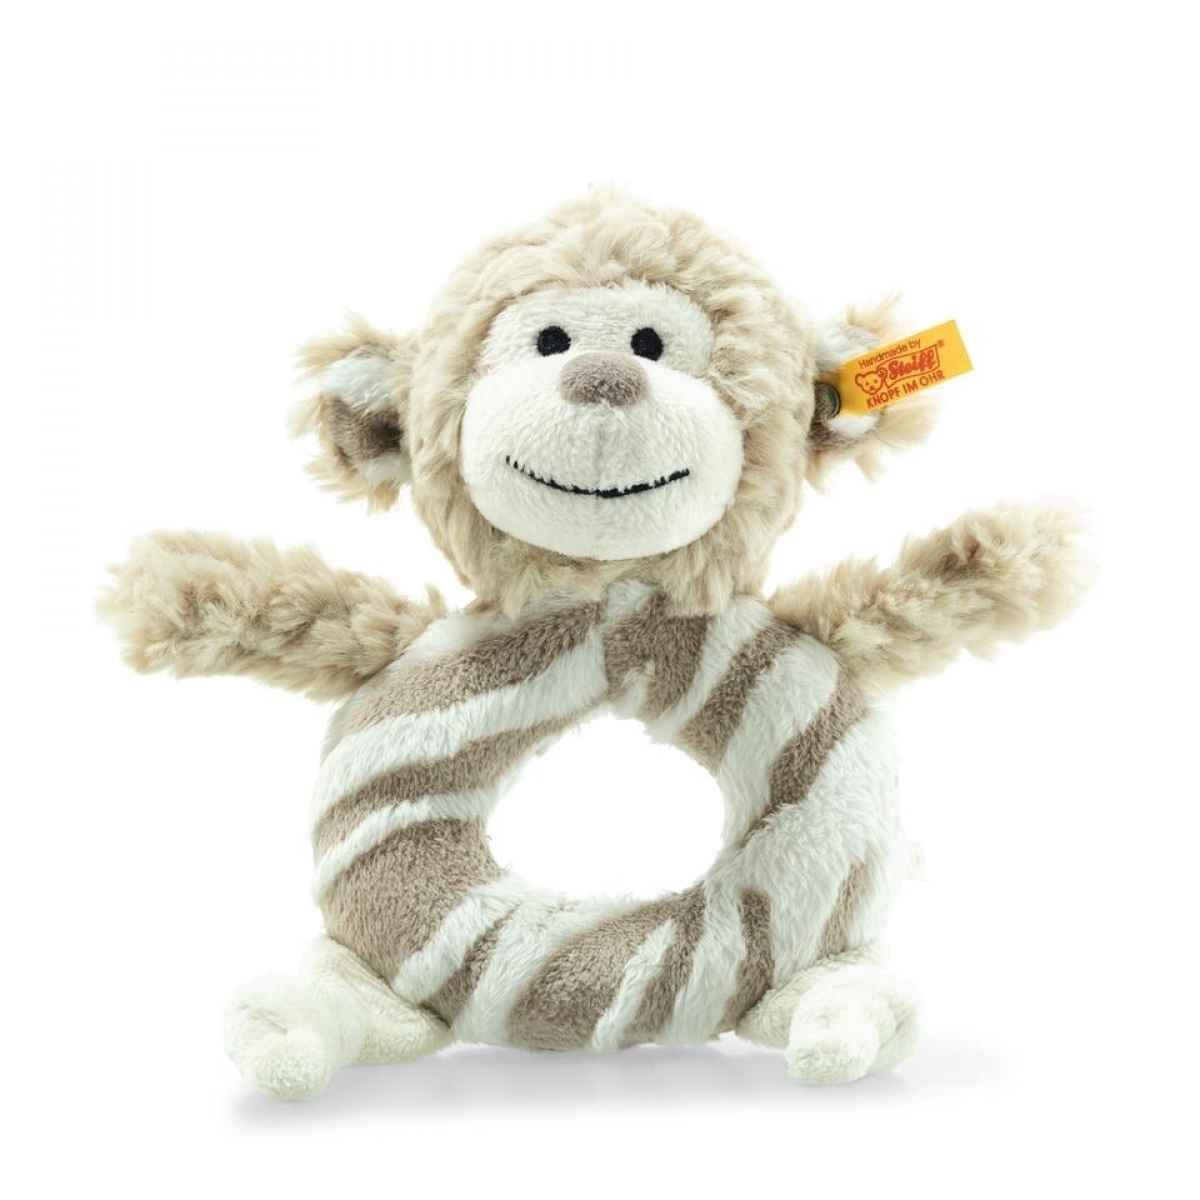 Bingo monkey grip toy